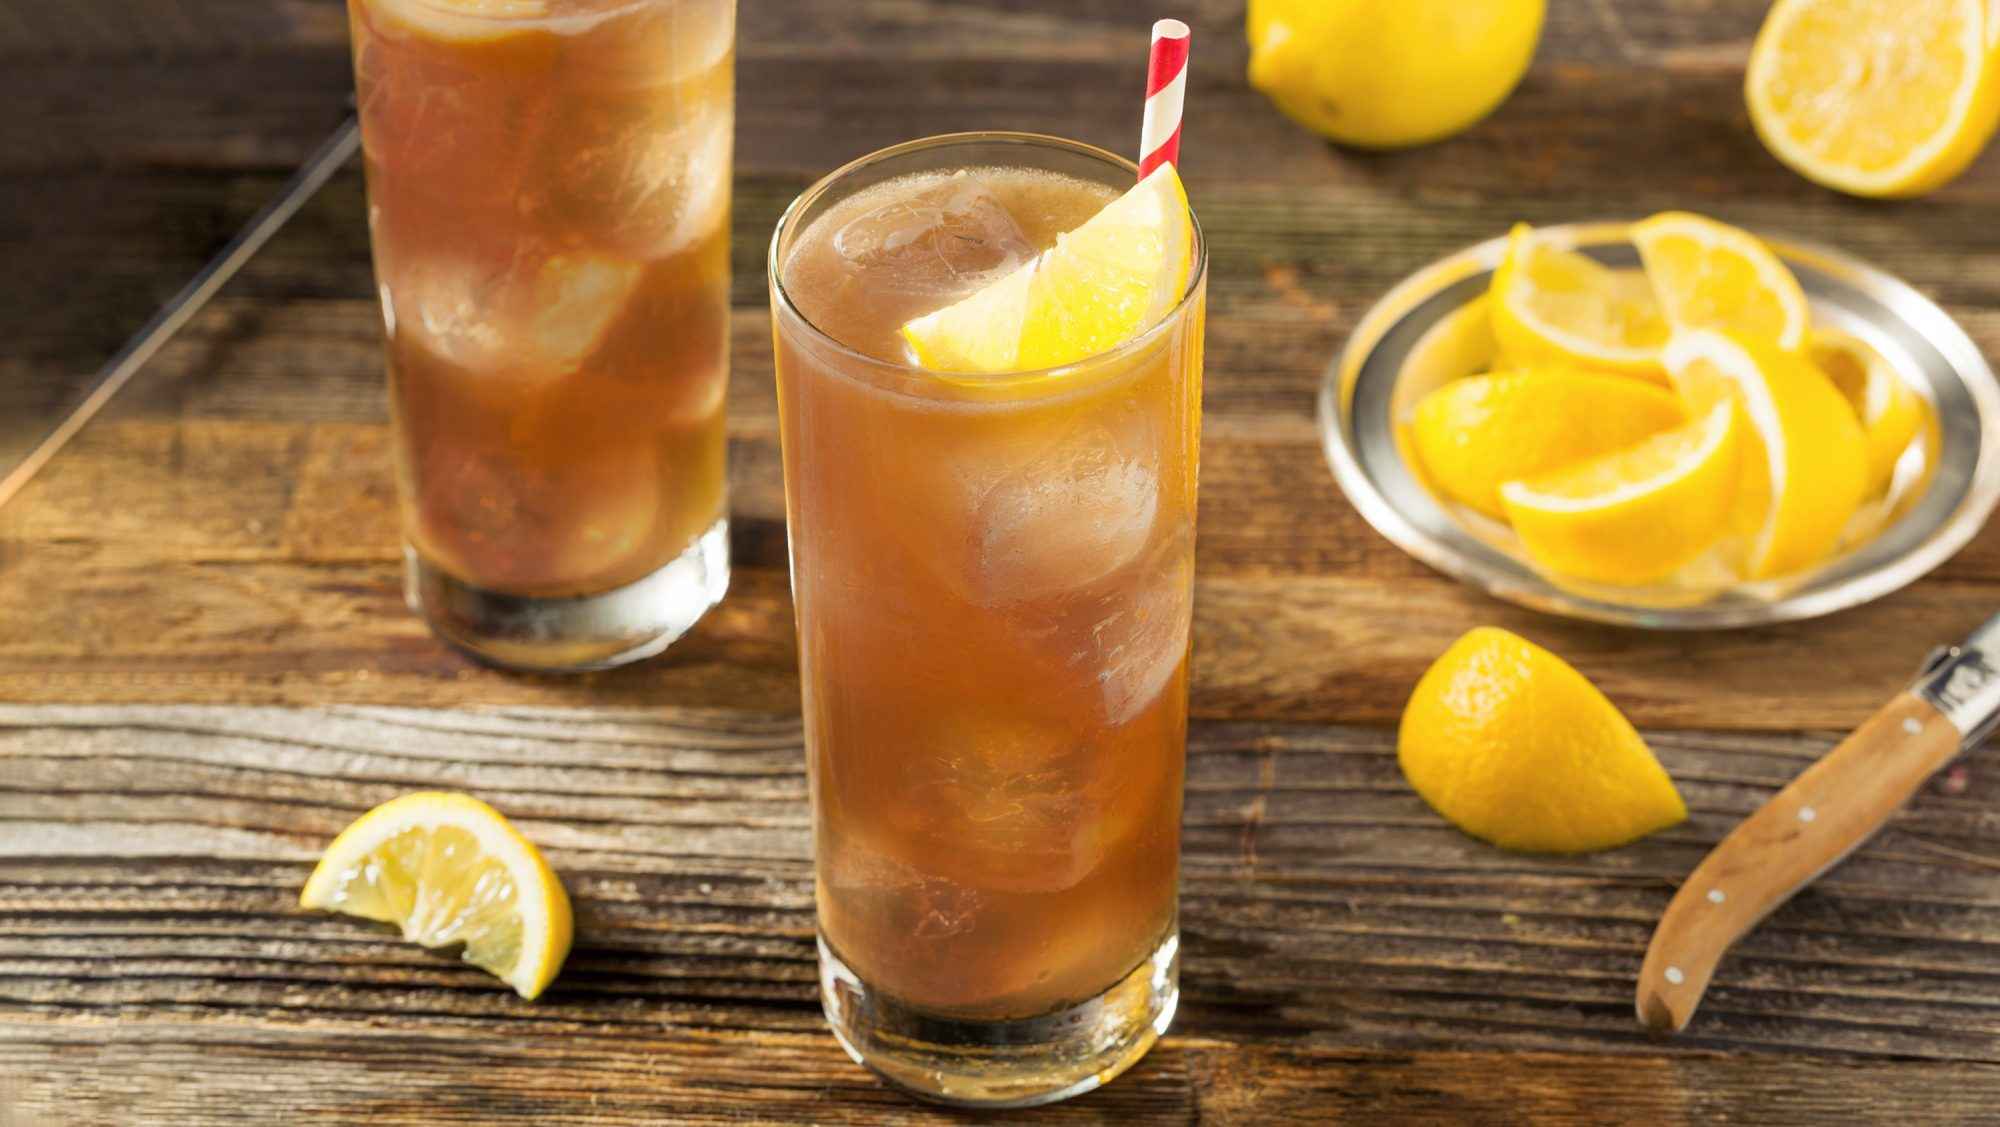 Here's How to Make a Perfectly Balanced Long Island Iced Tea Cocktail